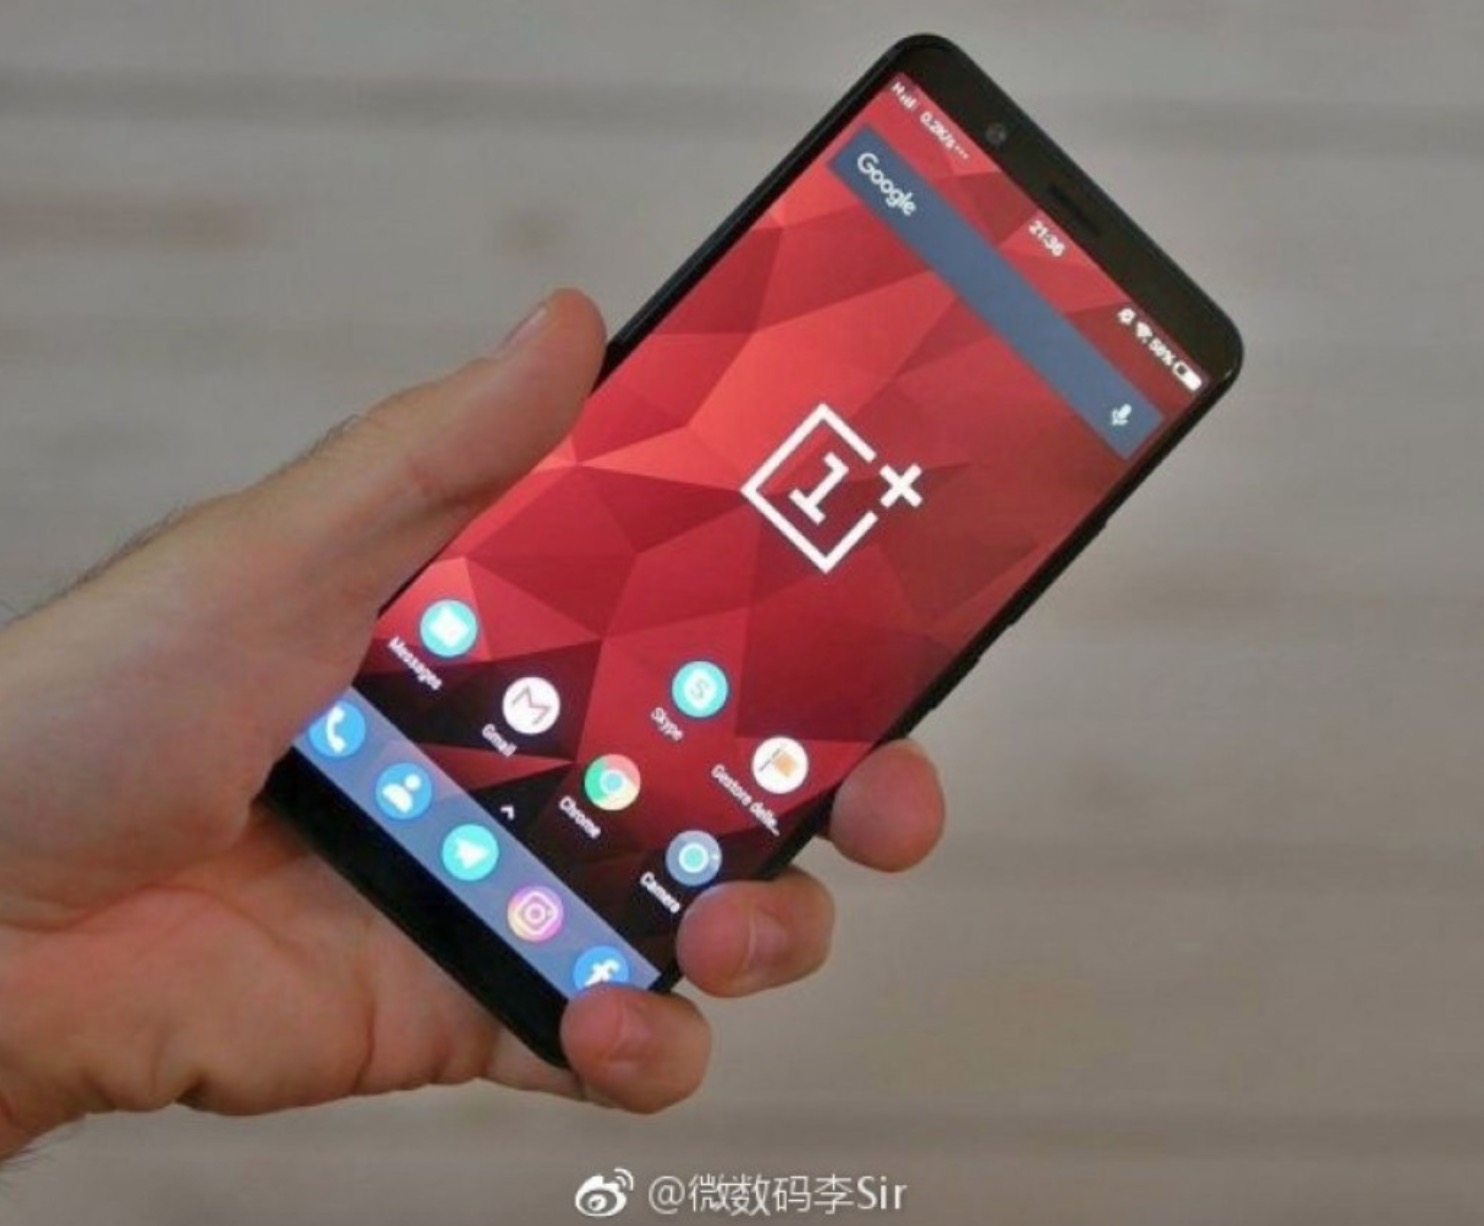 OnePlus 5T hands-on images leaked, could launch on November 16